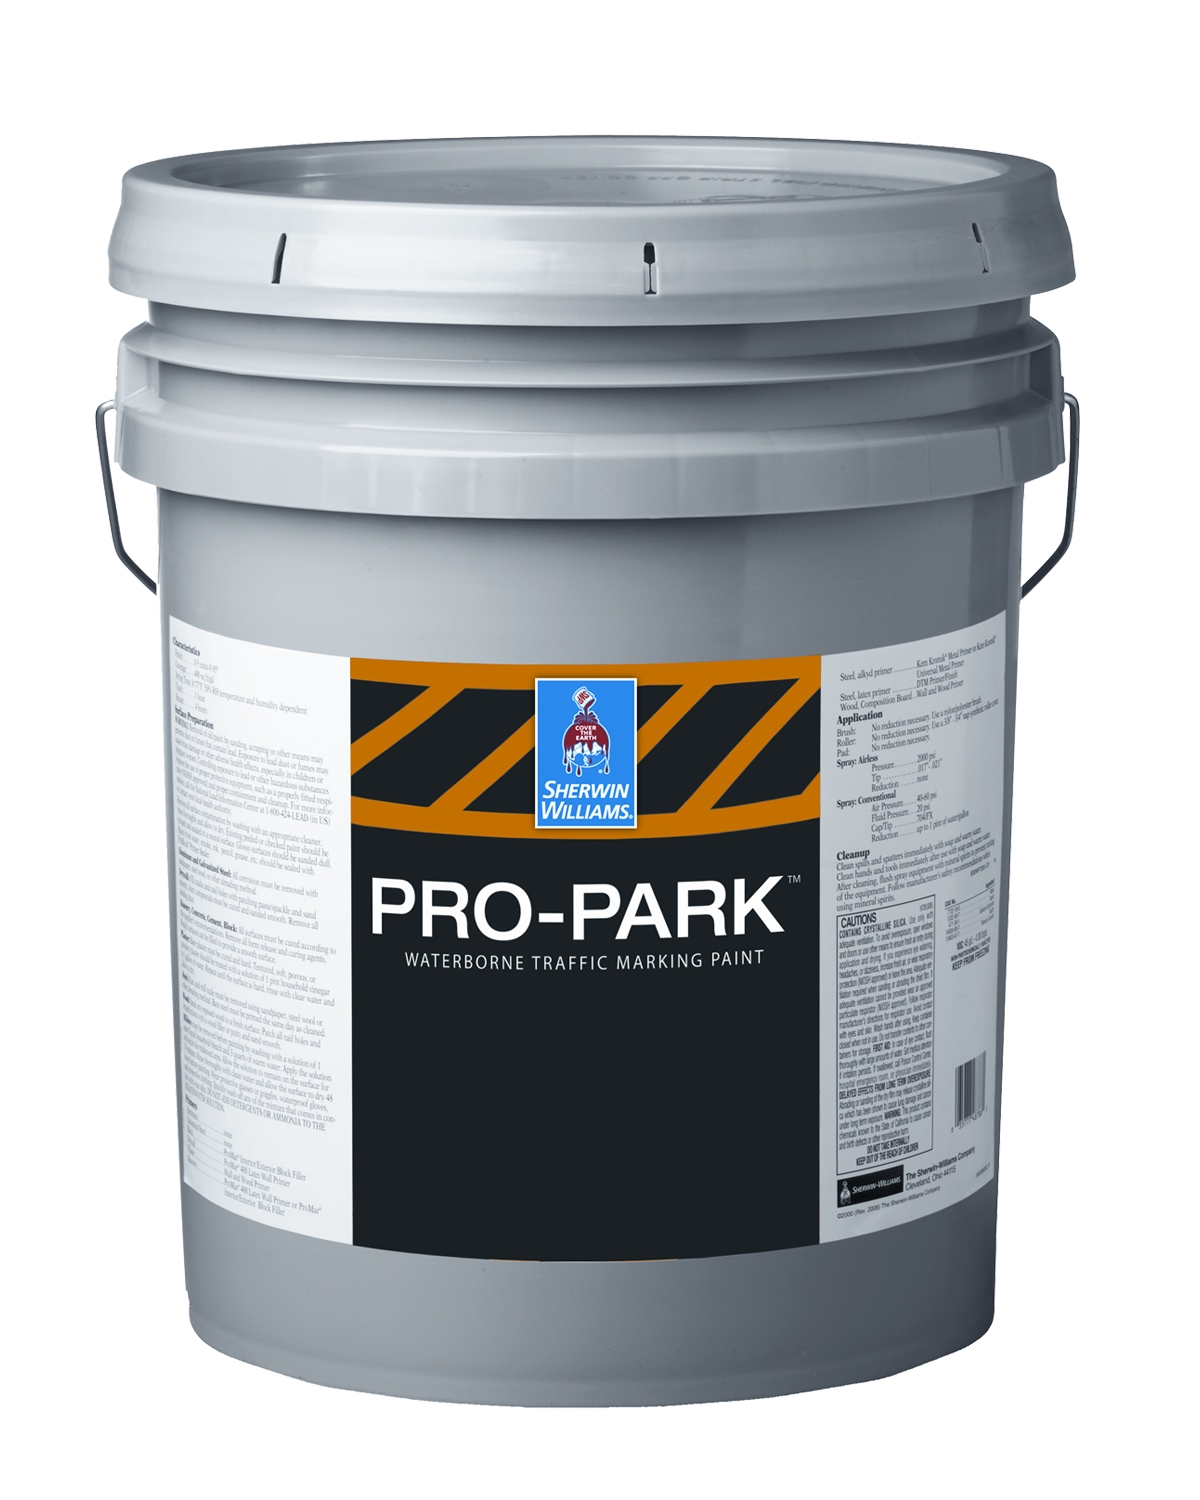 Pro-Park® Waterborne Traffic Marking Paint